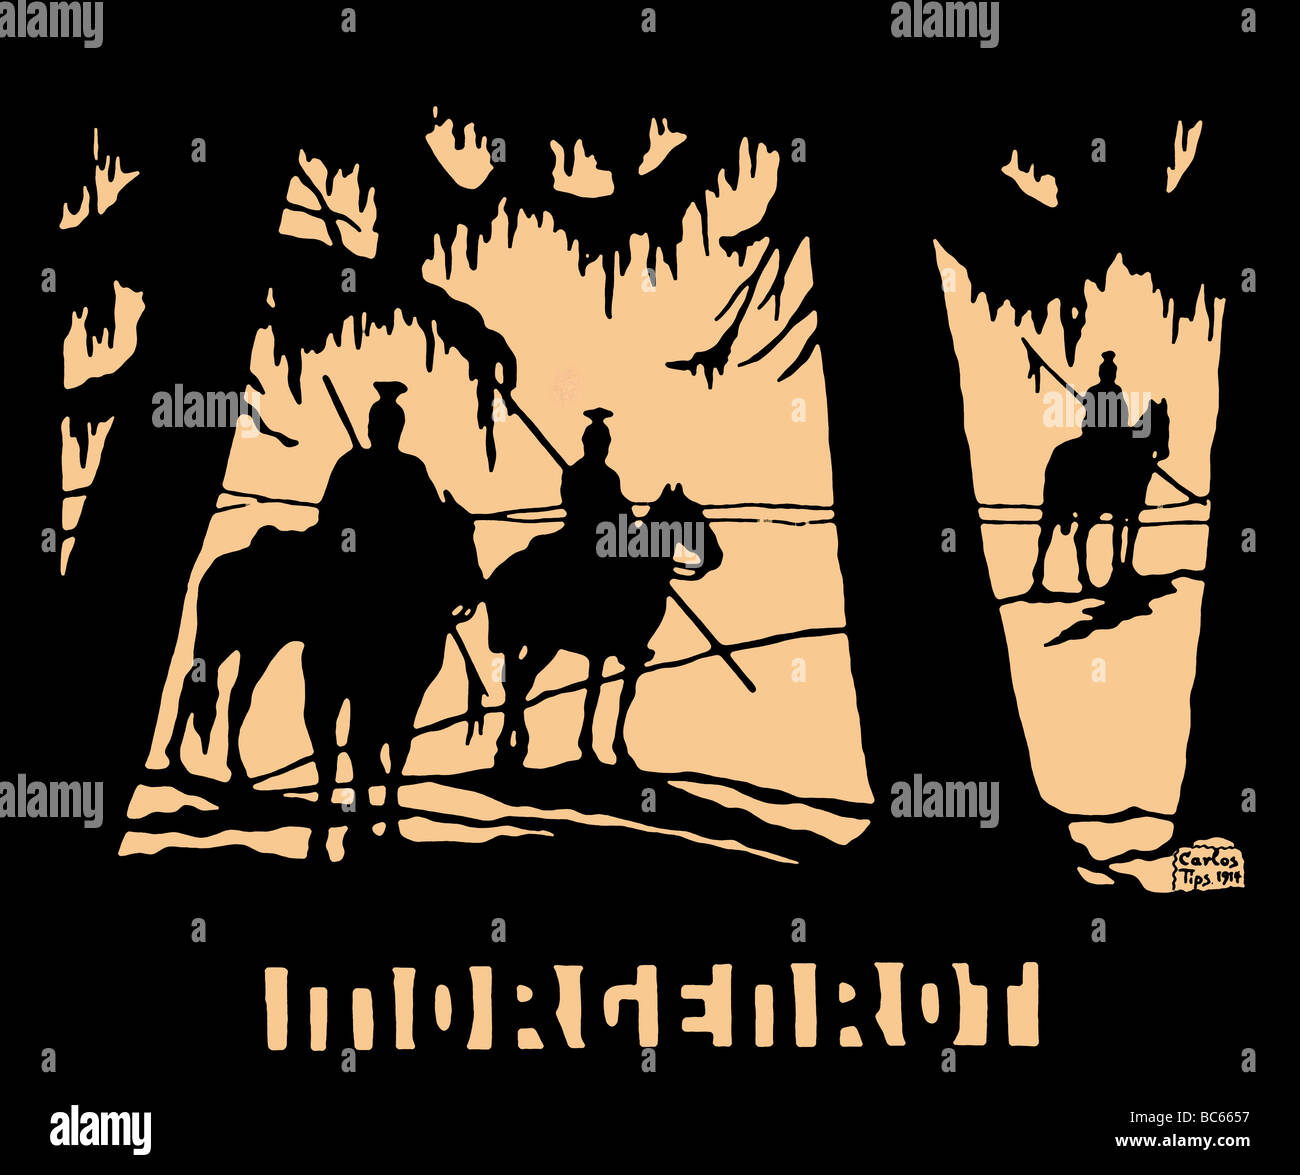 events, First World War / WWI, propaganda, 'Morgenrot' (Dawning), after a silhouette by Carlos Tips, Germany, - Stock Image